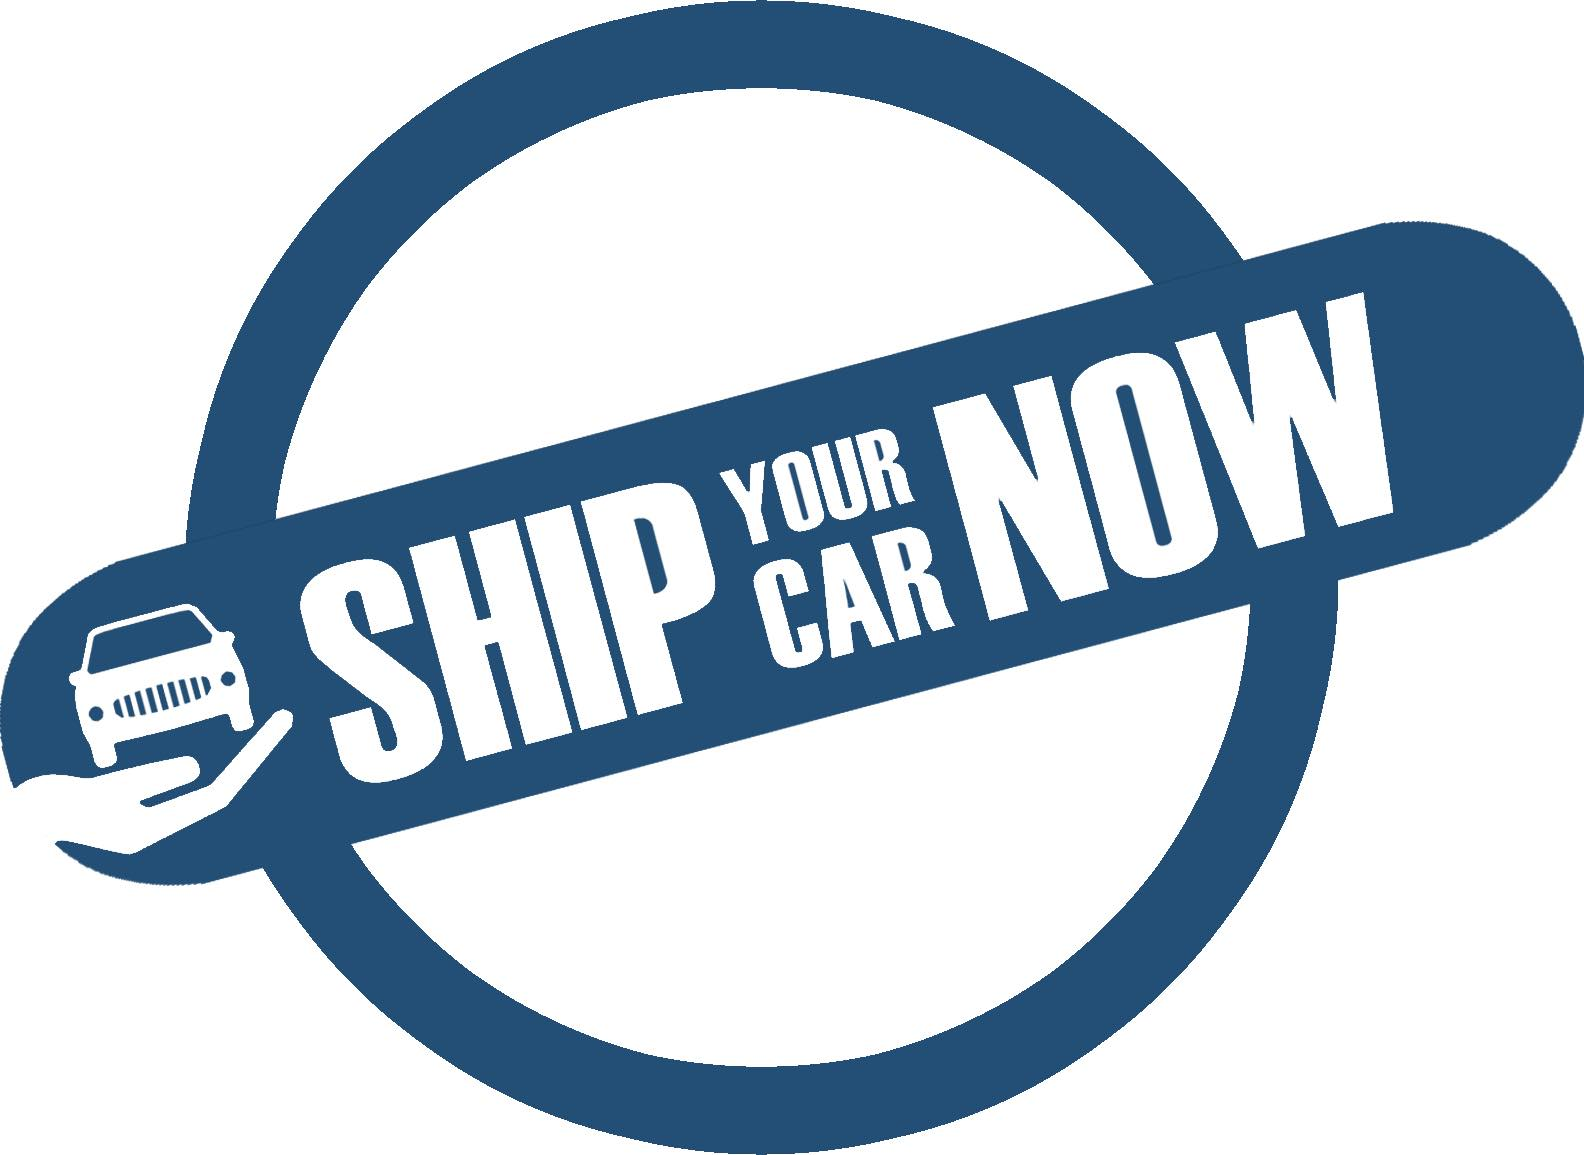 The Best Ship Car Overseas Services